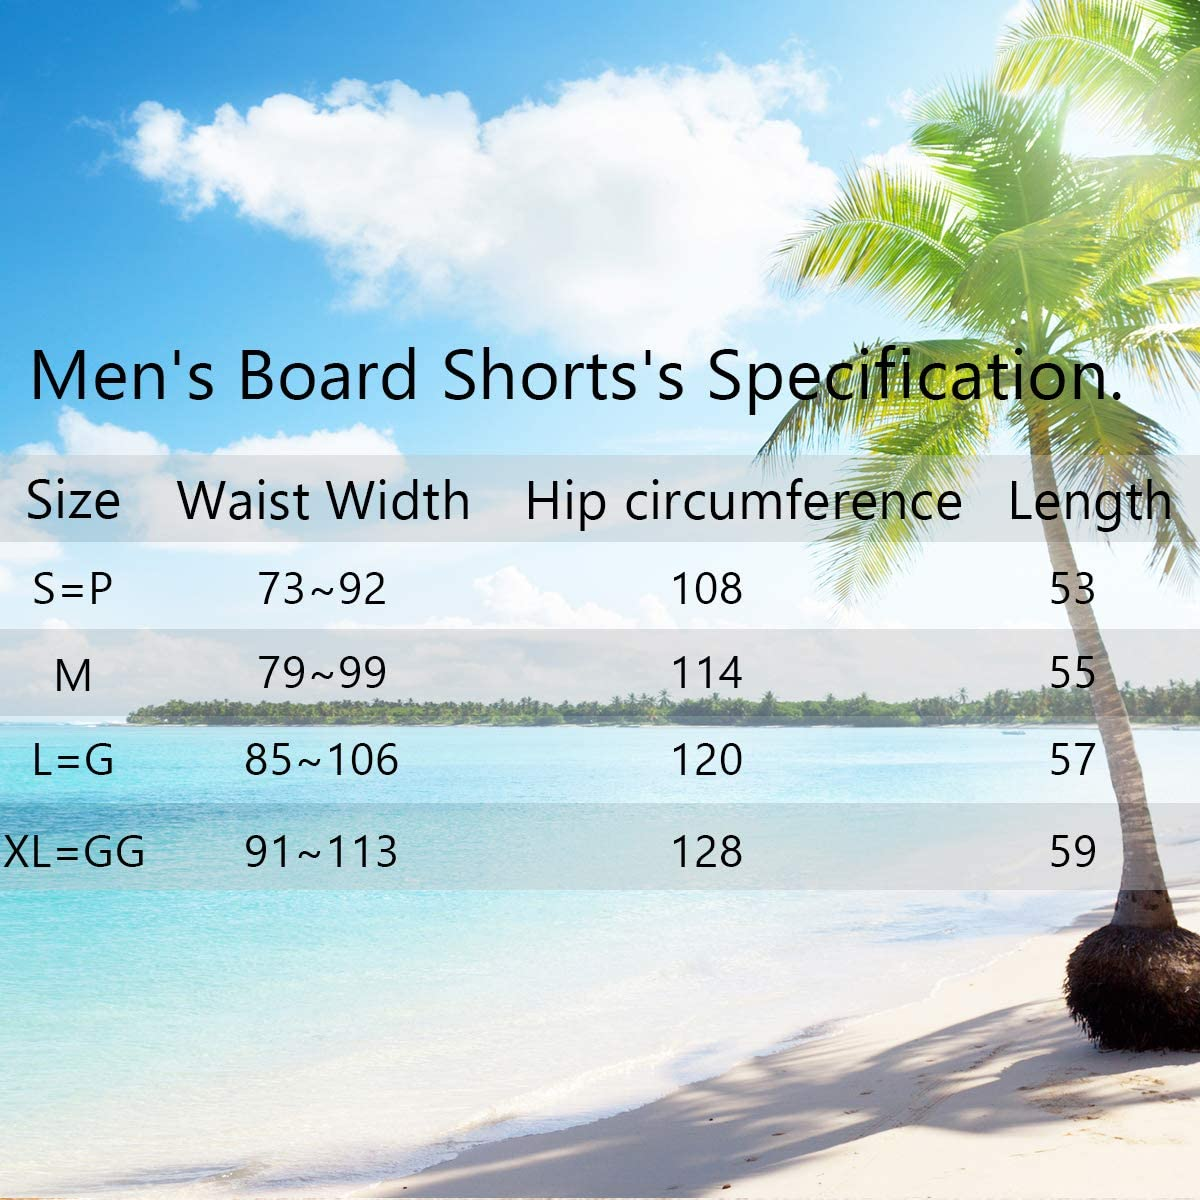 Super 777 Men/'s Board Shorts Swim Trunks with Lining and Side Pocket Quick Dry Beachwear Holiday Board Swim Shorts.